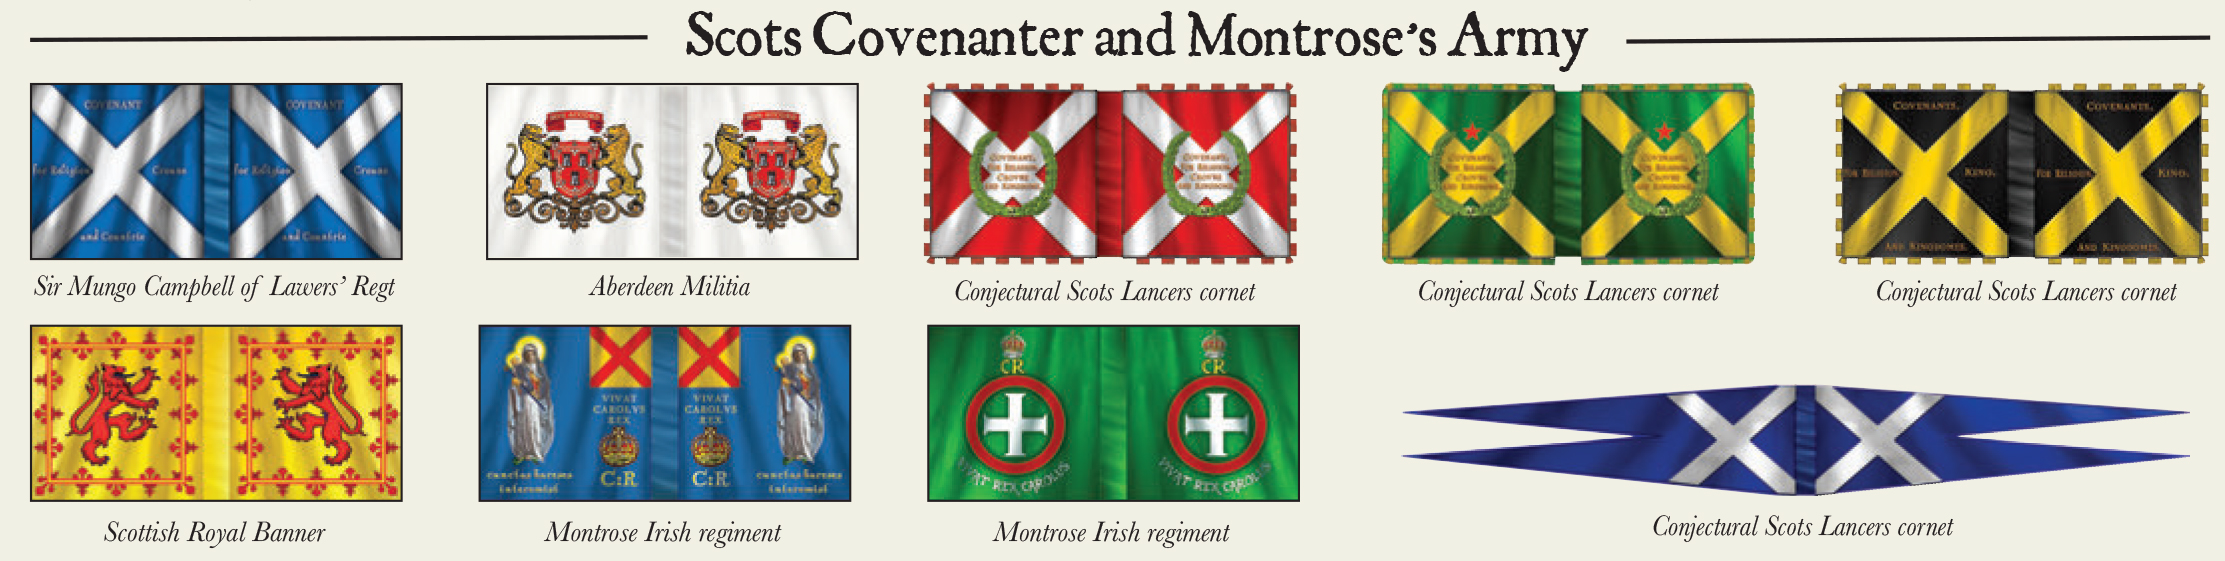 Scots Covenanter and Montrose's Army